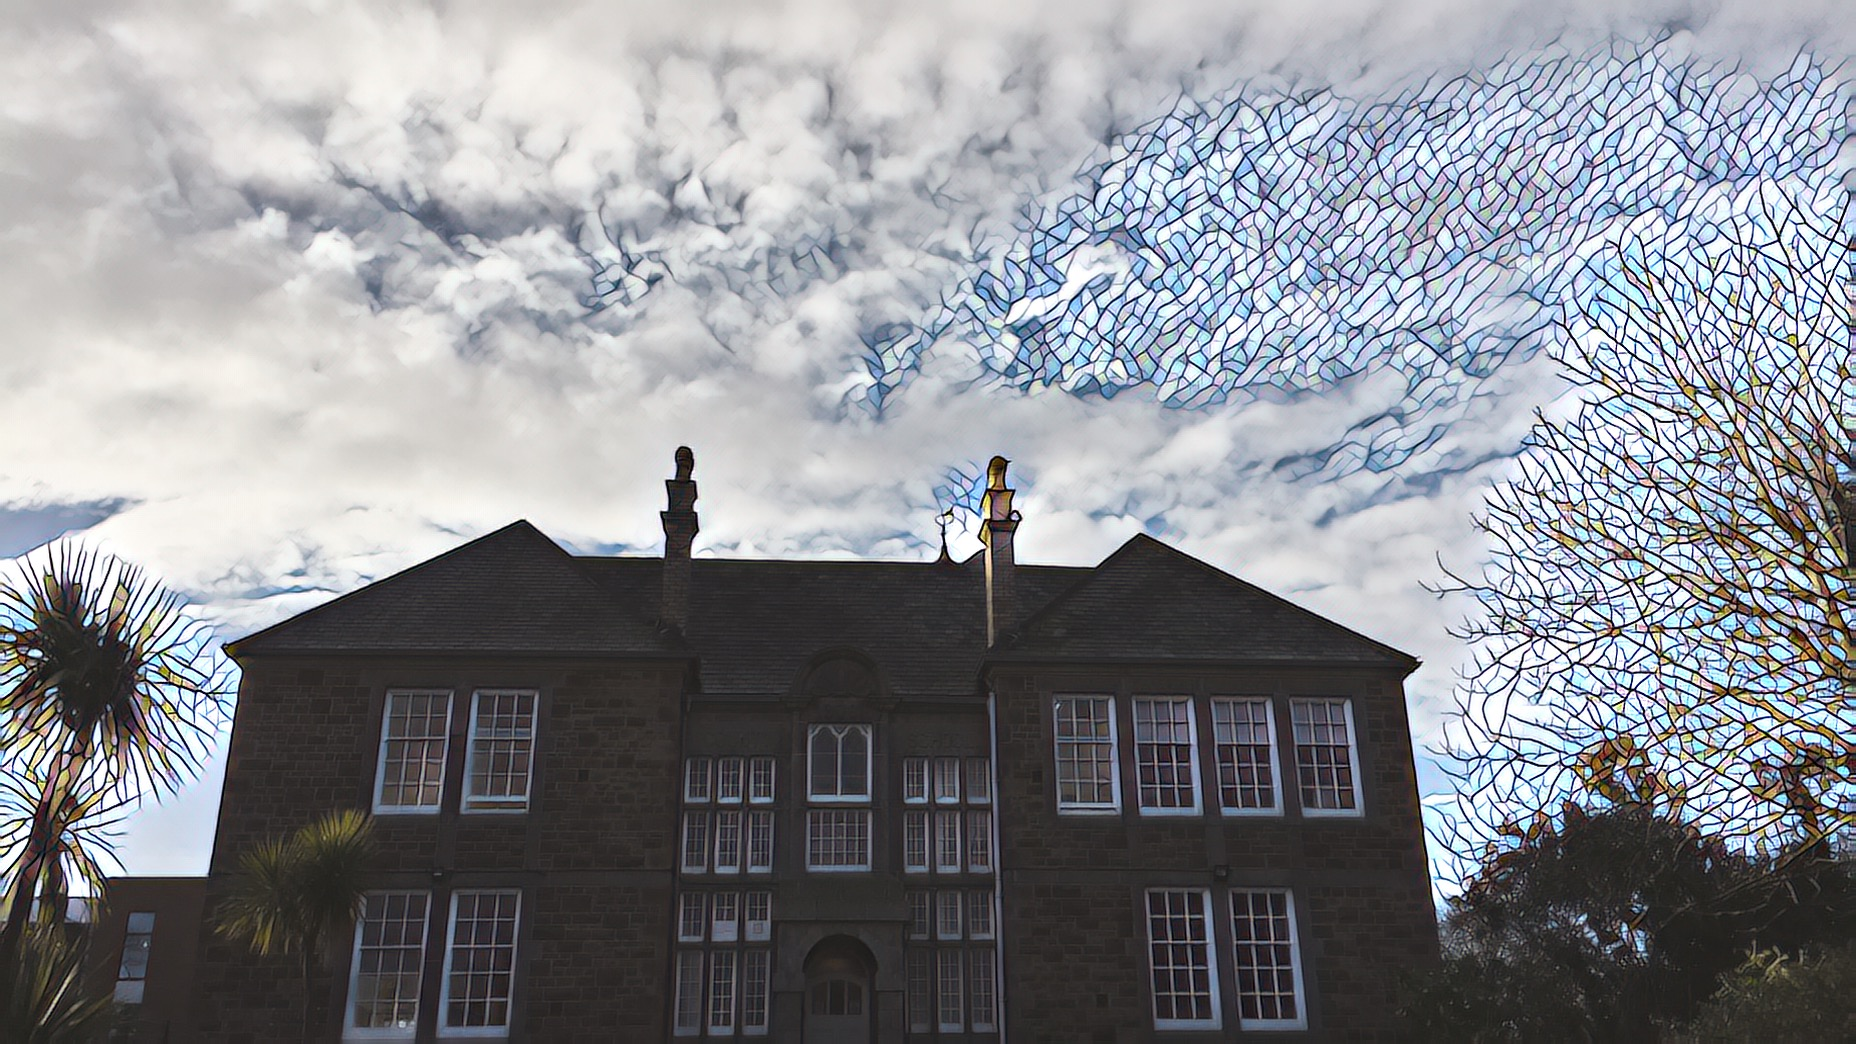 Cornwall School of Maths and Science